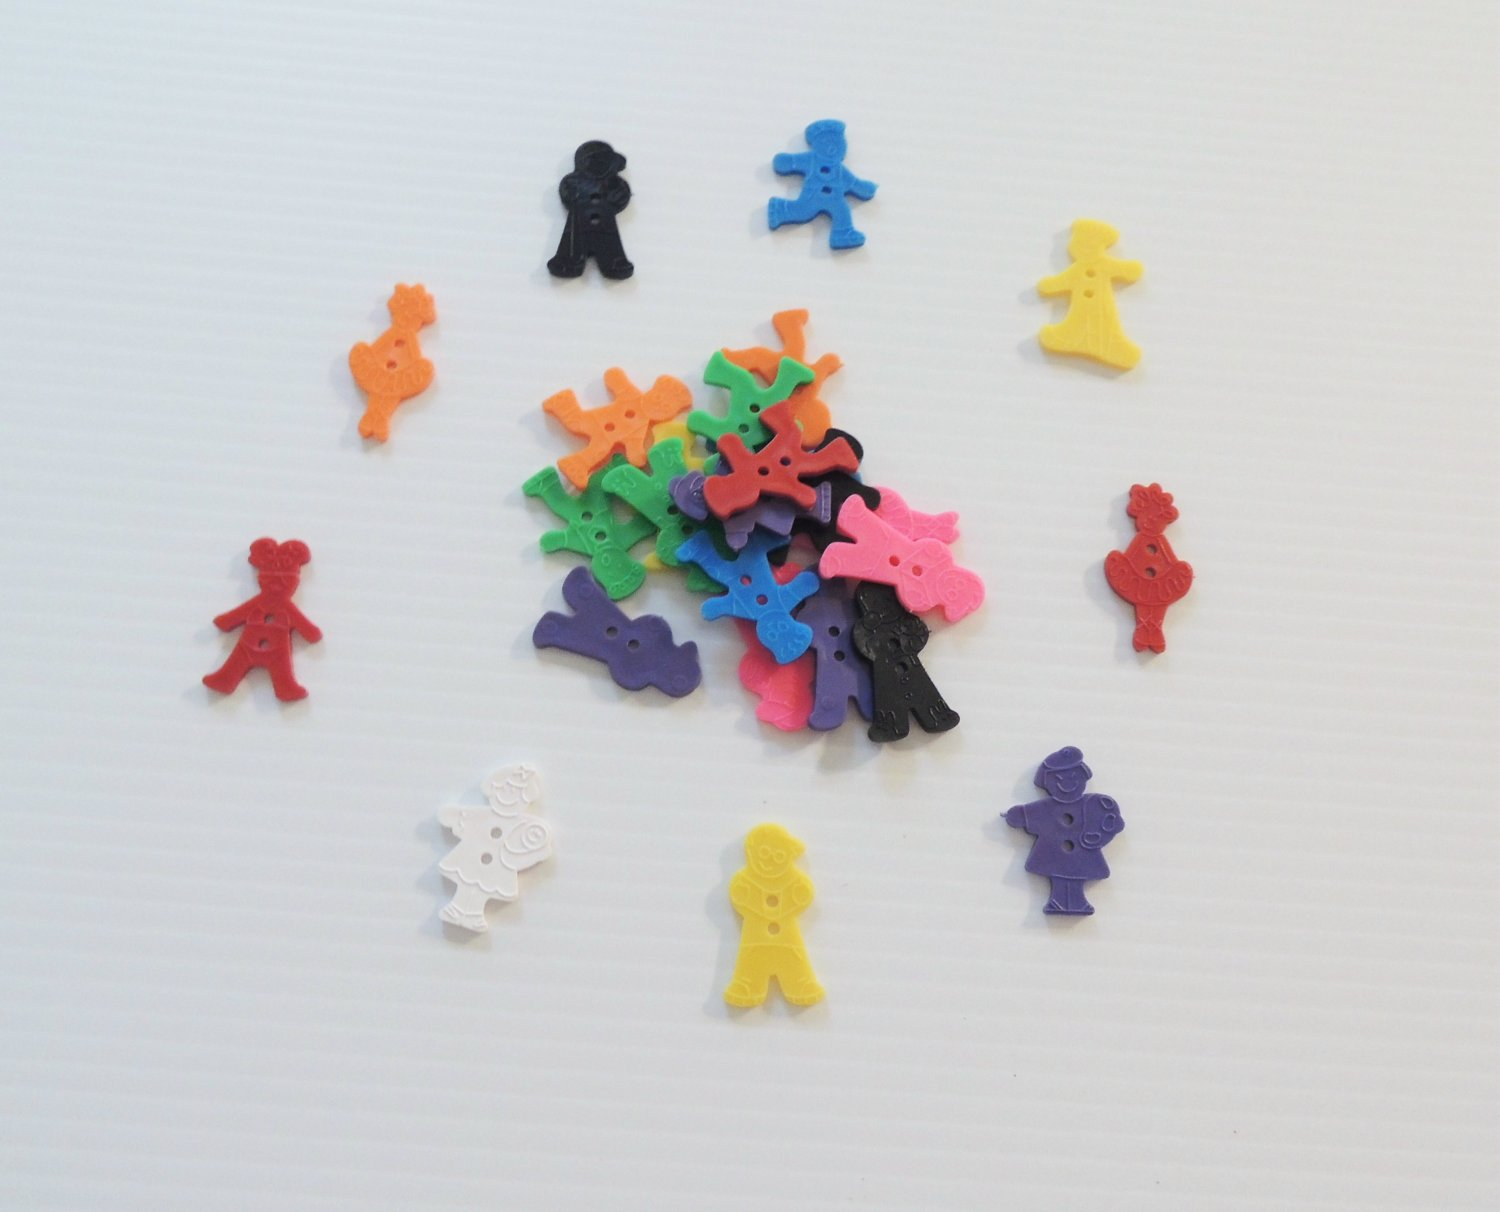 25 People Buttons bird toy parts parrots cages crafts